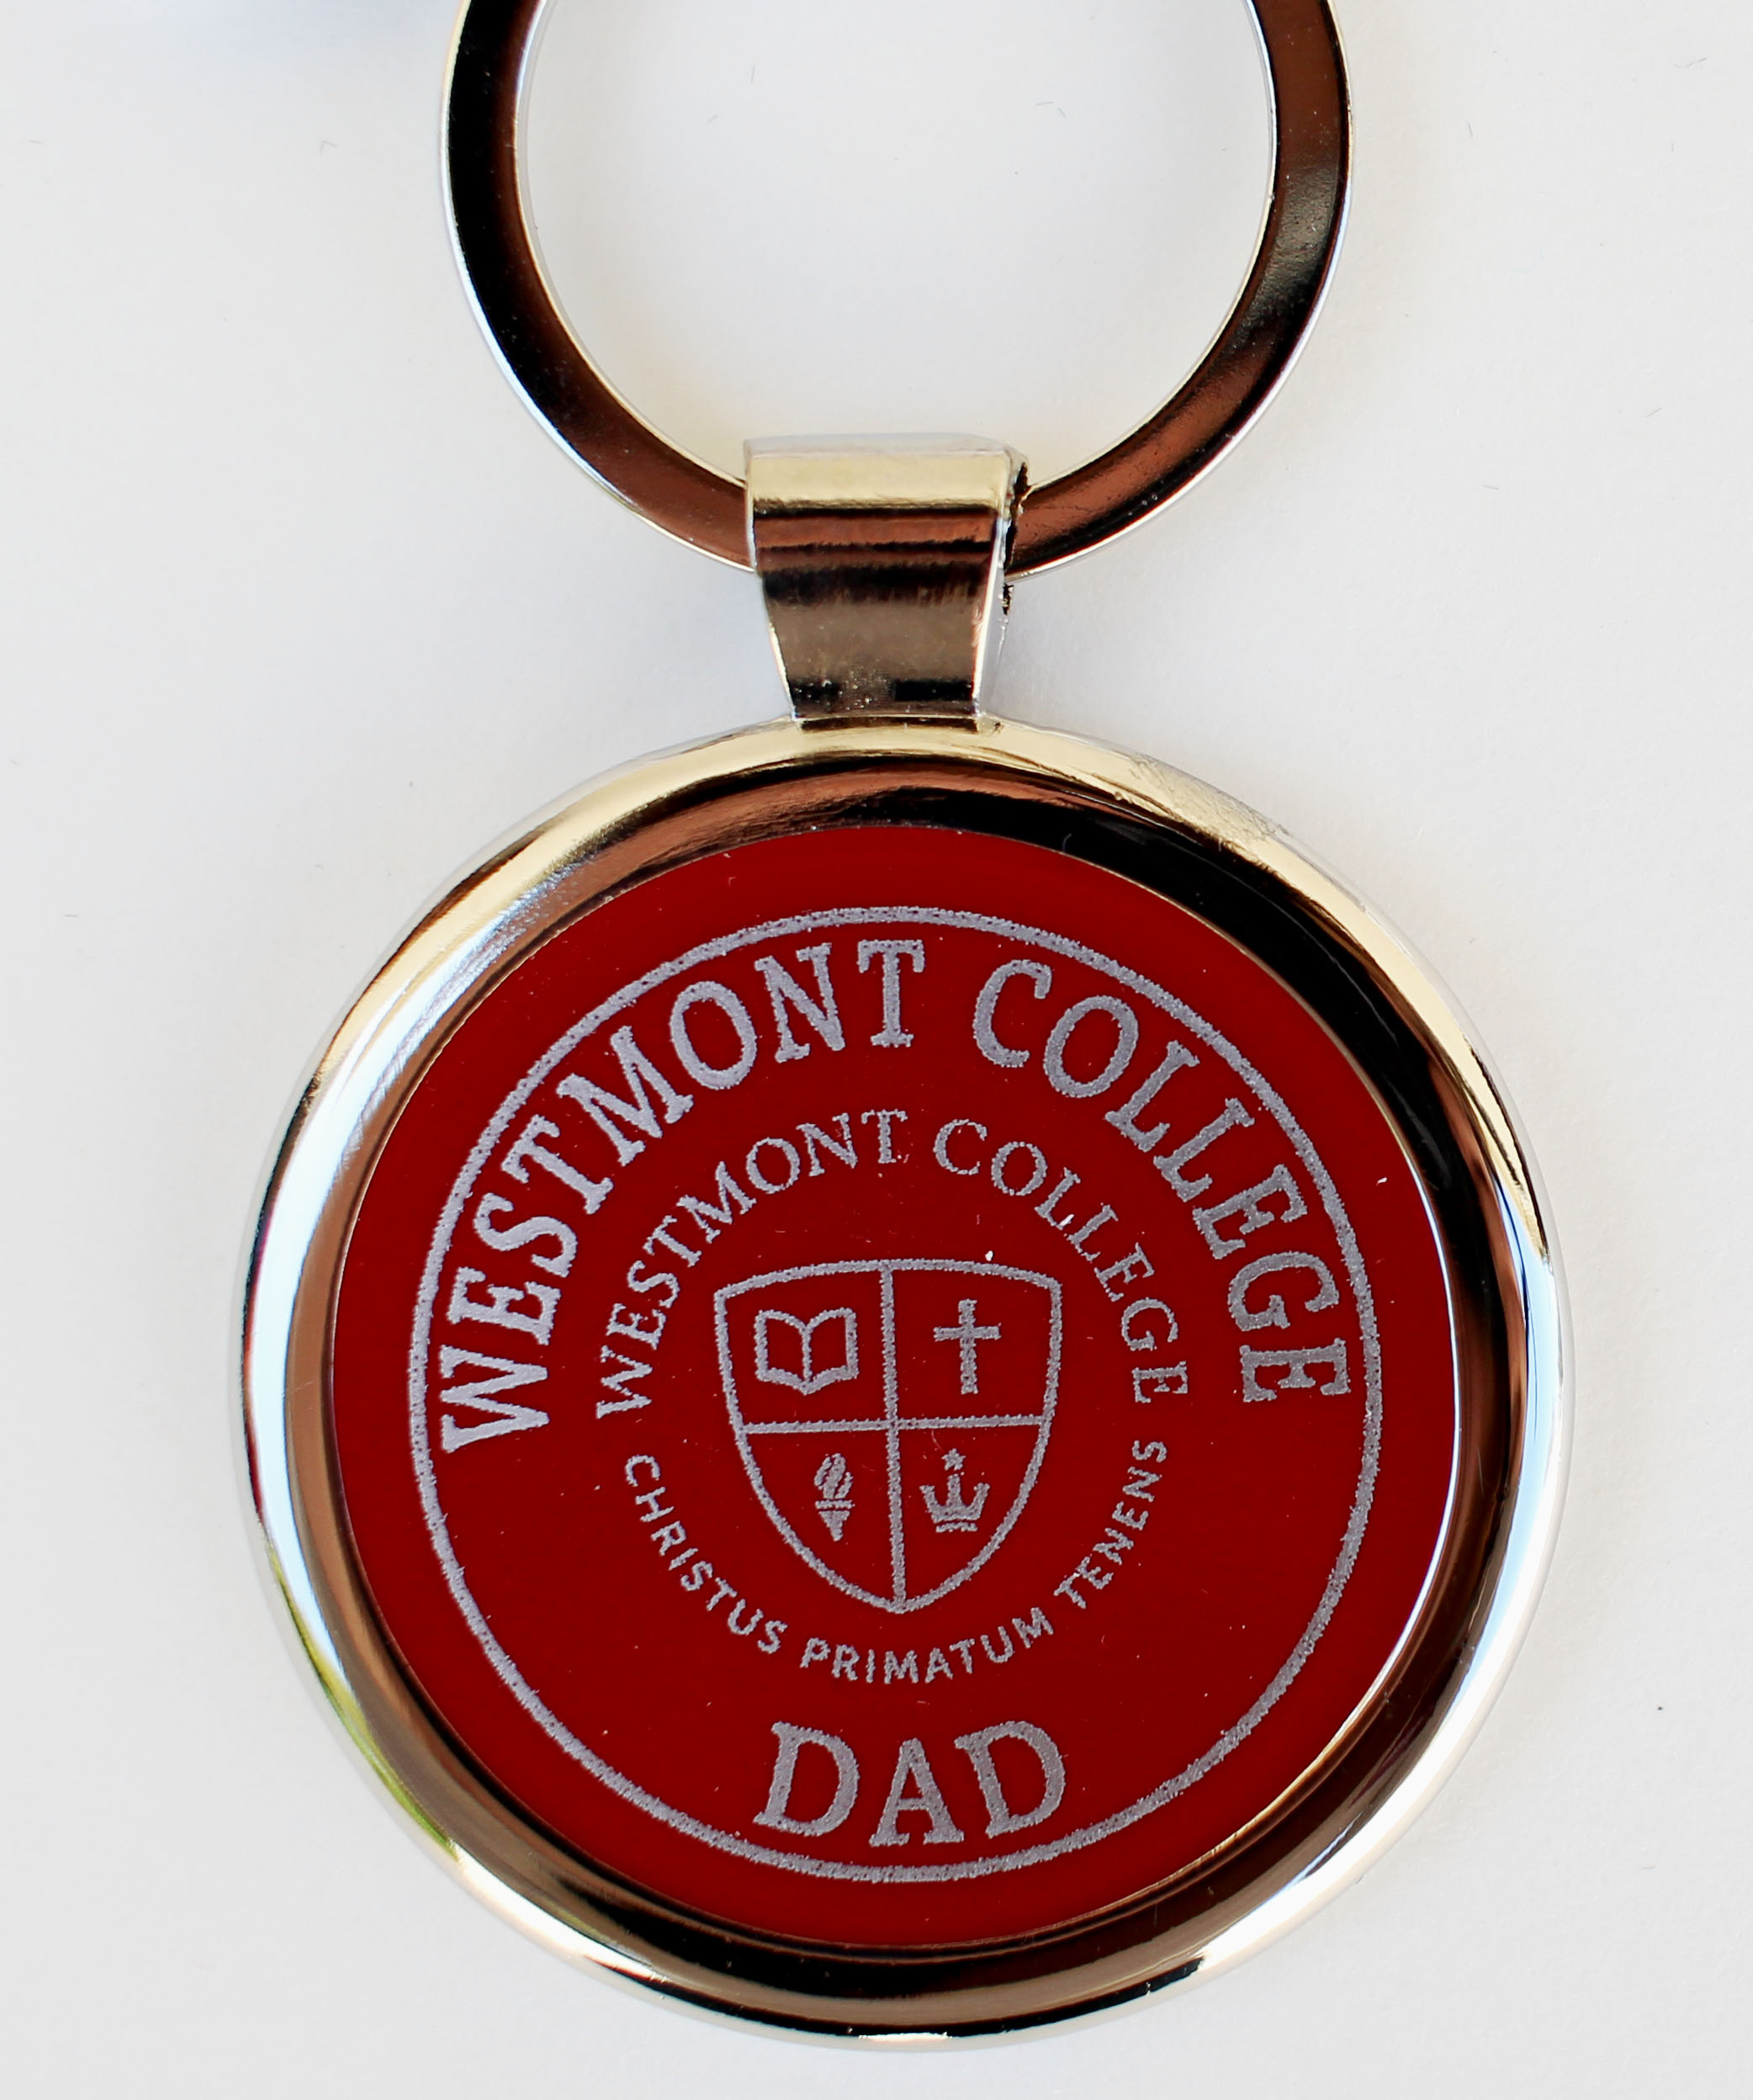 Image for the Spirit Round Dad Keychain product